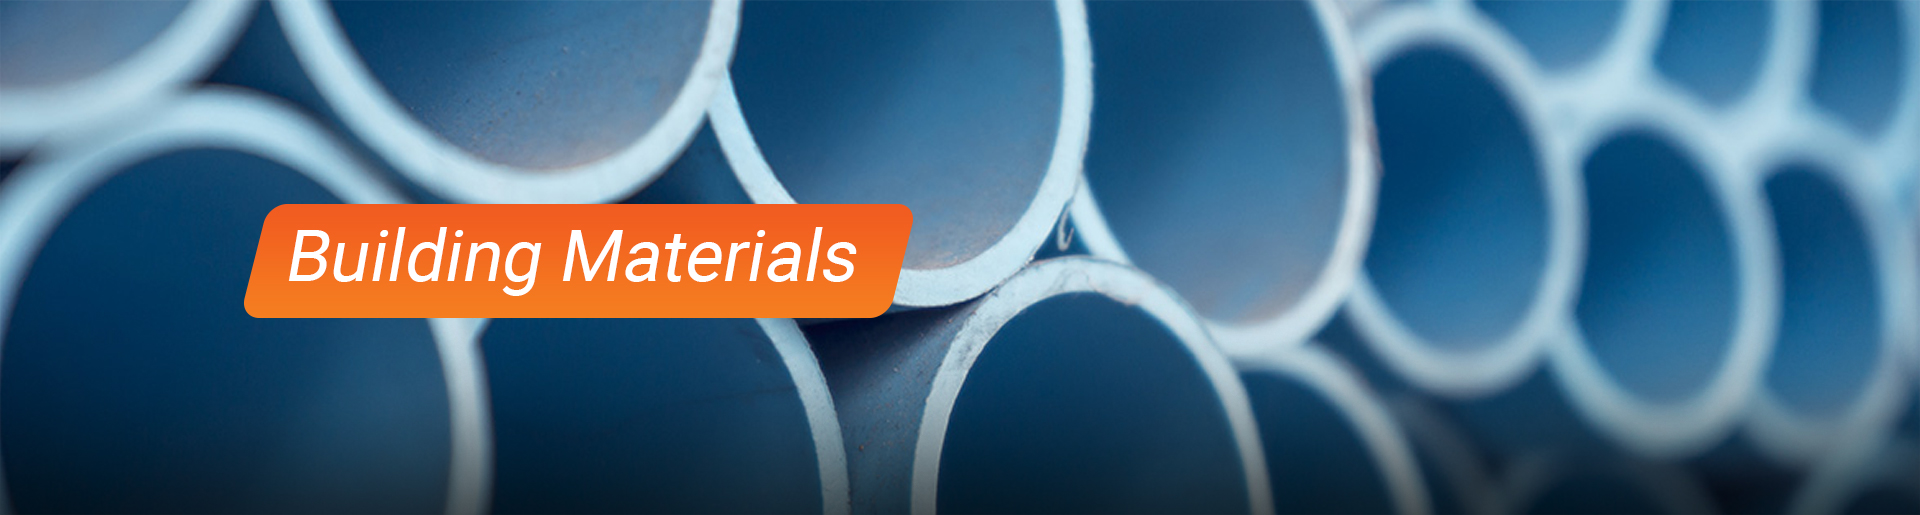 building-materials-product-banner